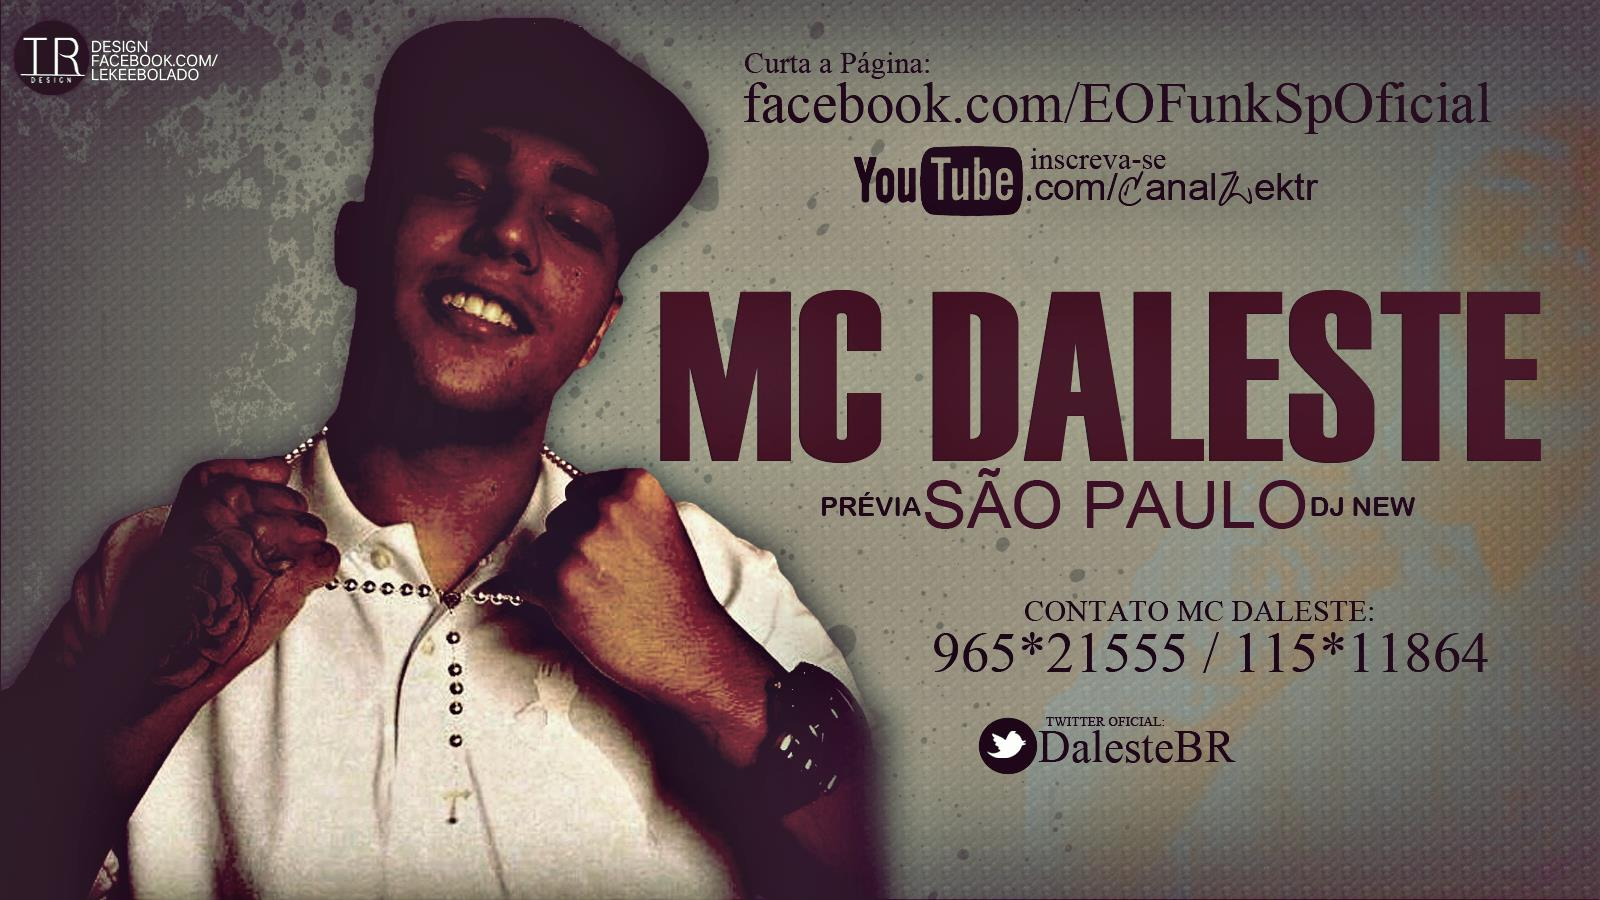 MC Daleste Social Network Wallpaper - MC Daleste Social Network Wallpaper